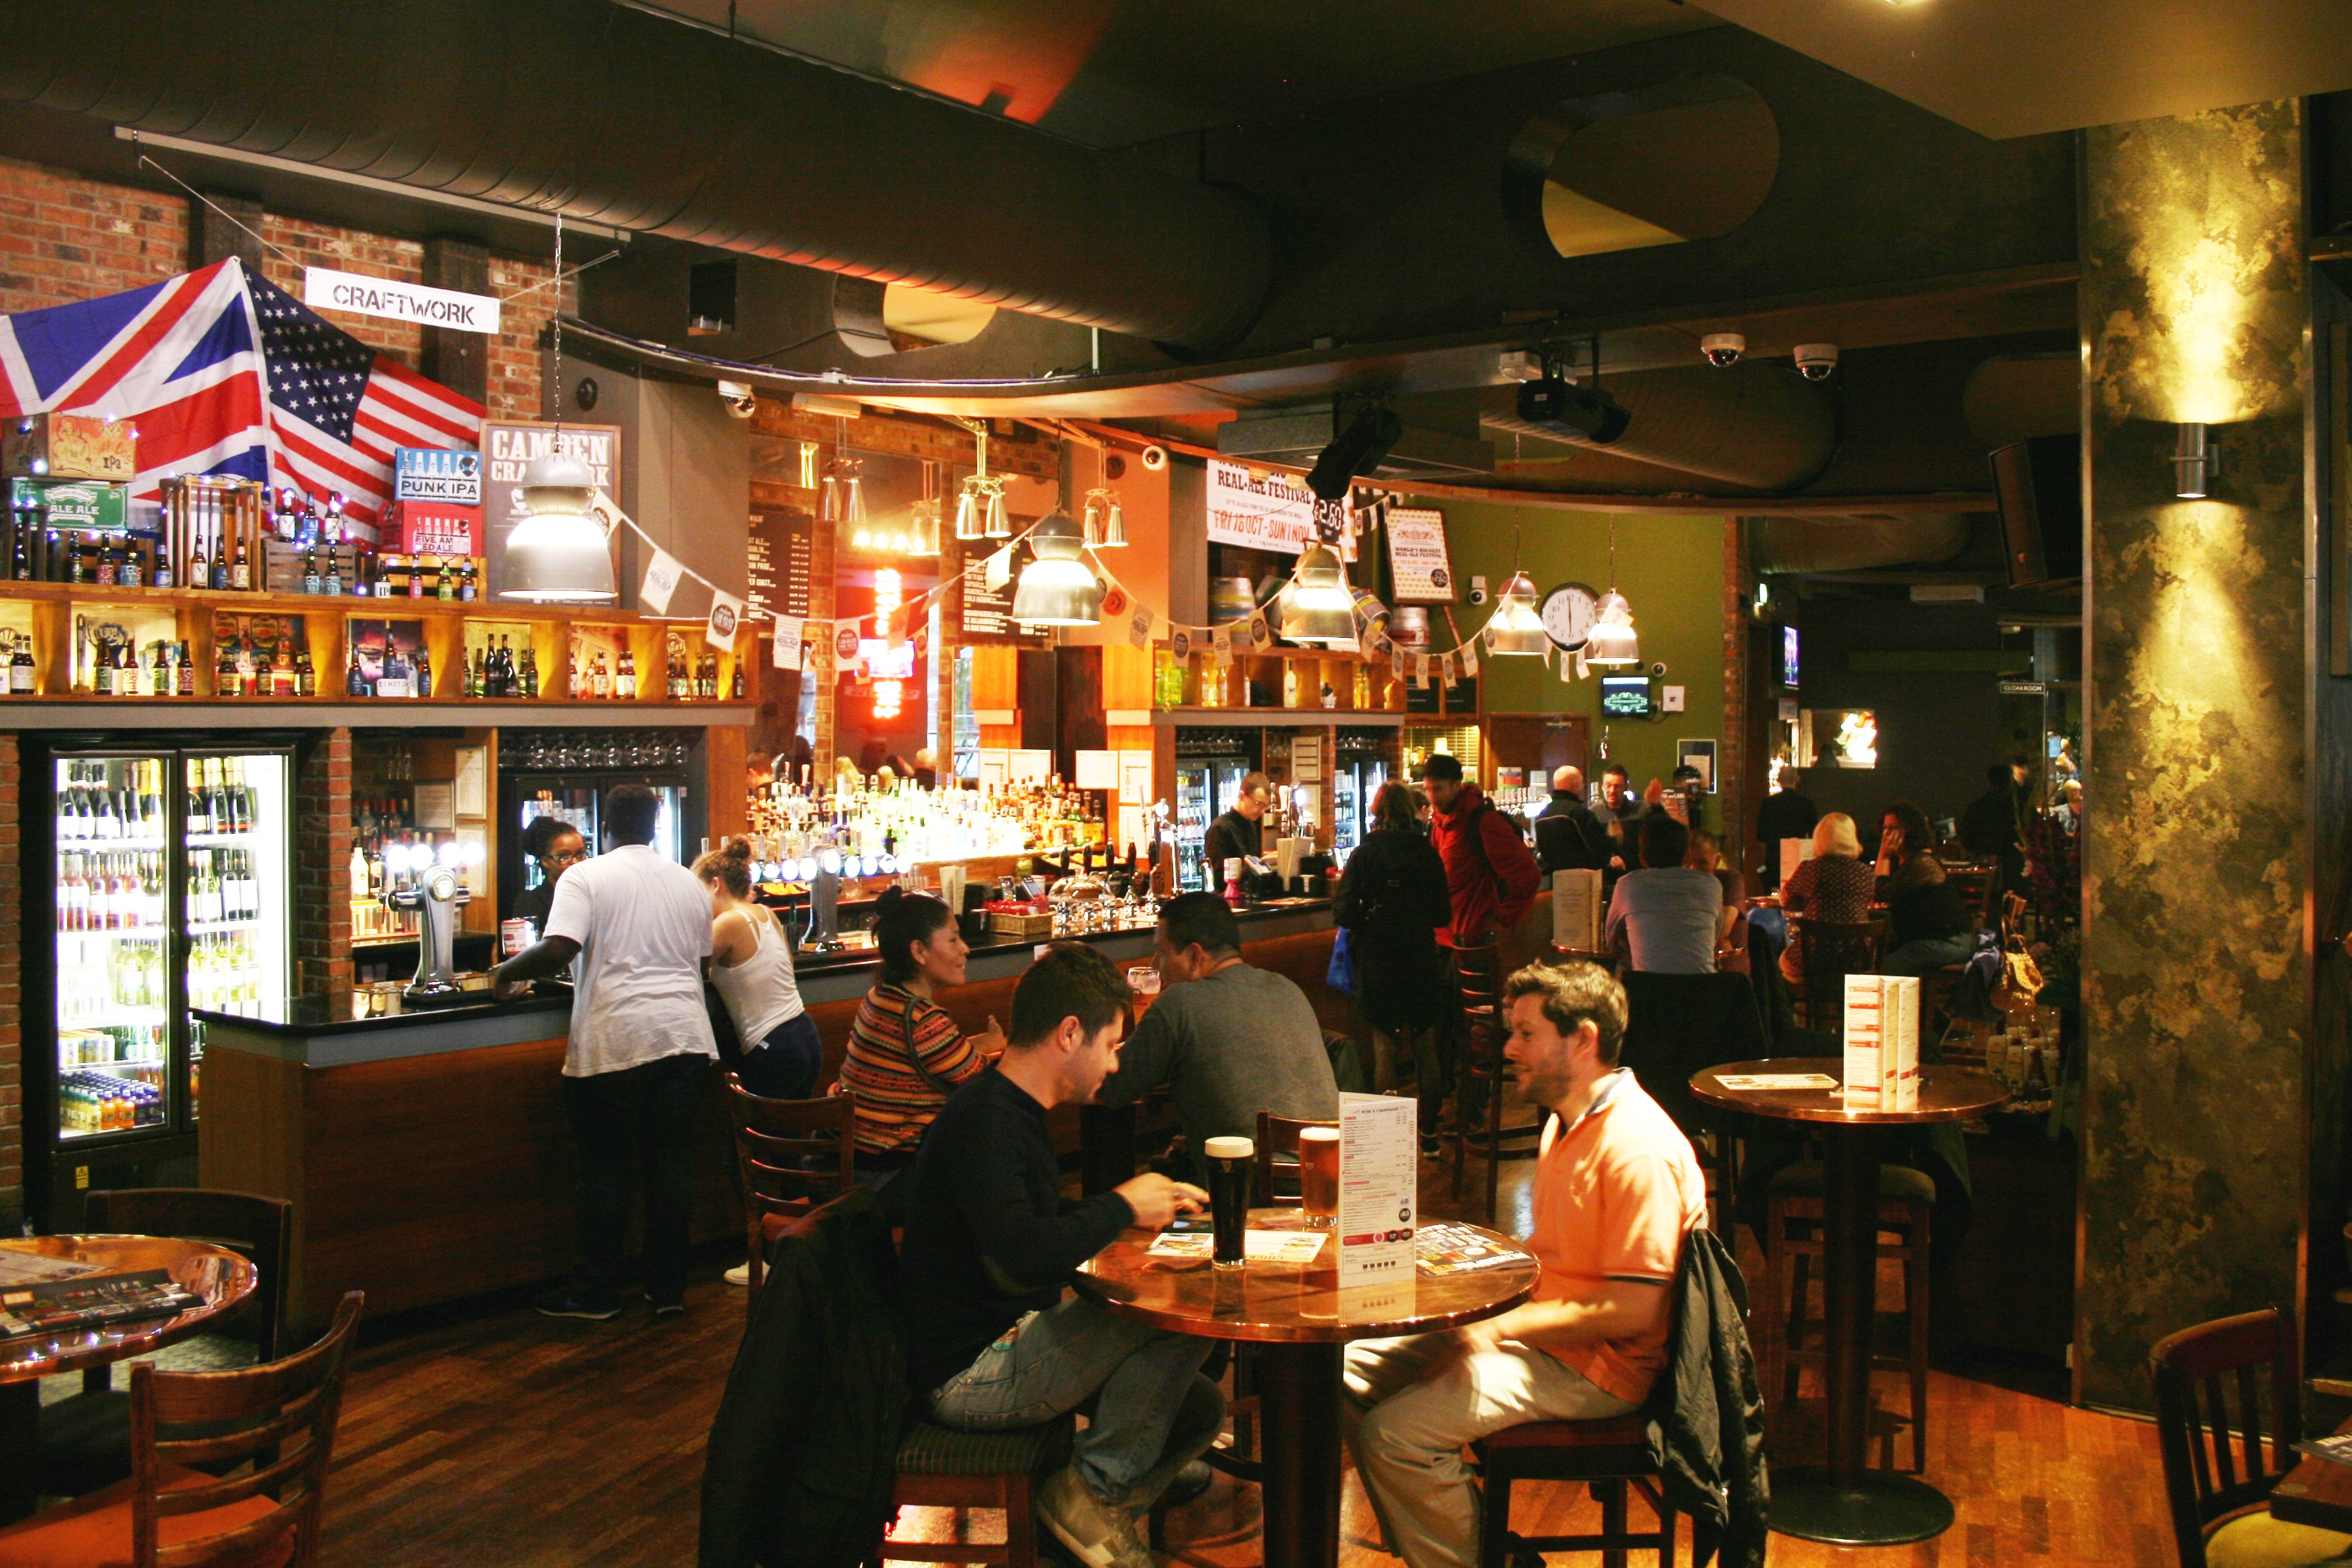 Pubs & Bars 4 - Camden Town London